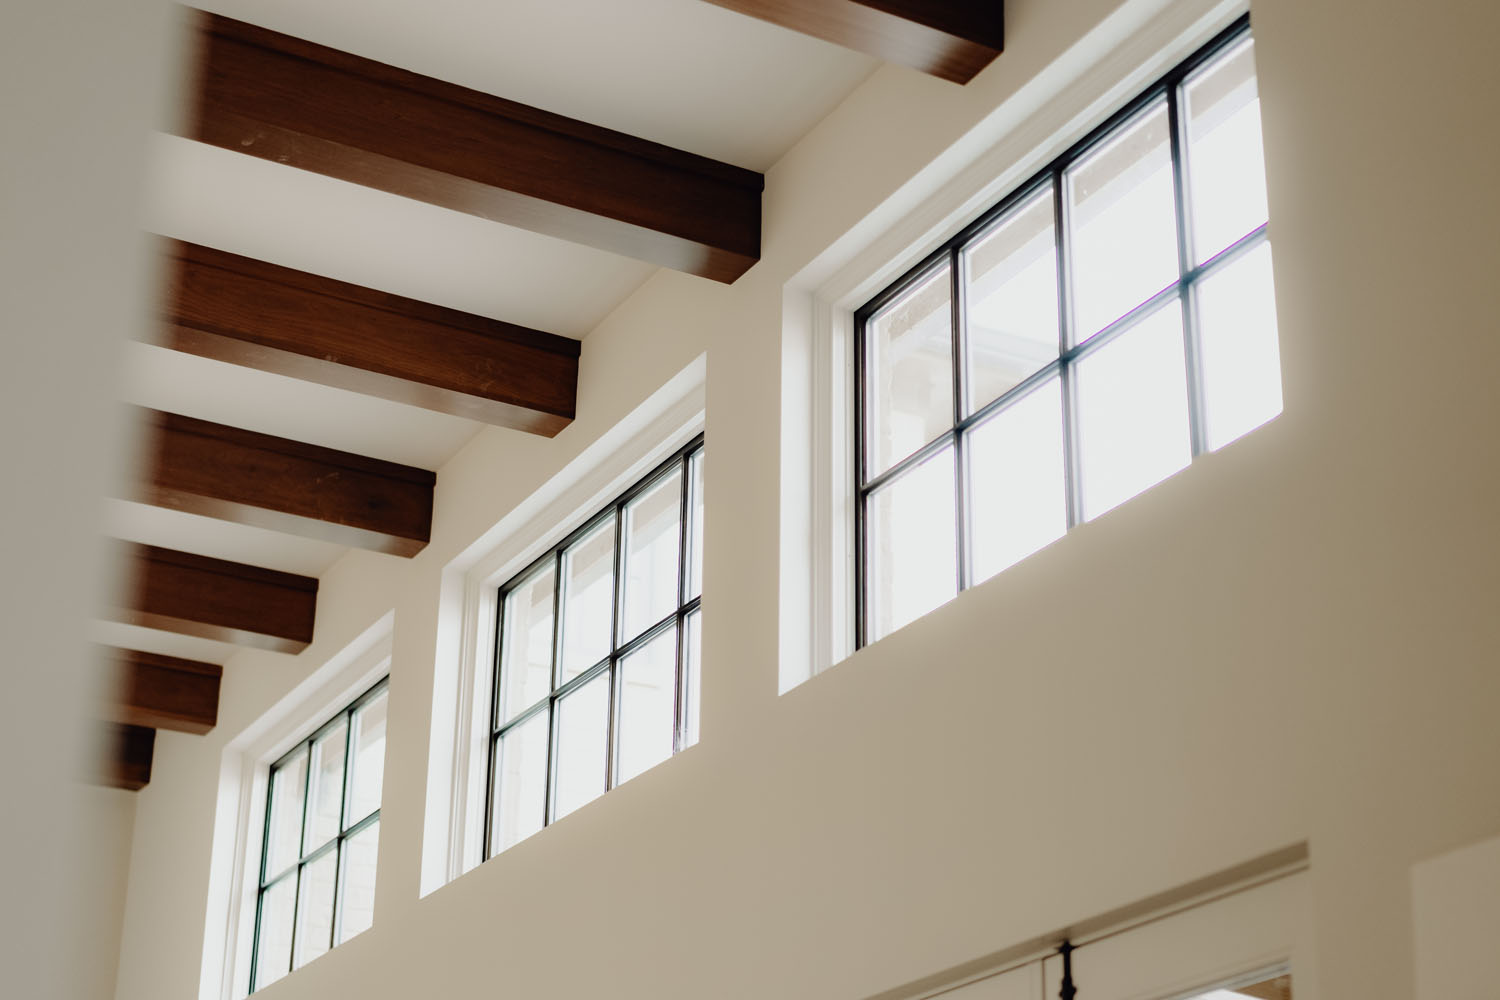 Custom wooden beams and windows by LA Construction custom home builders.